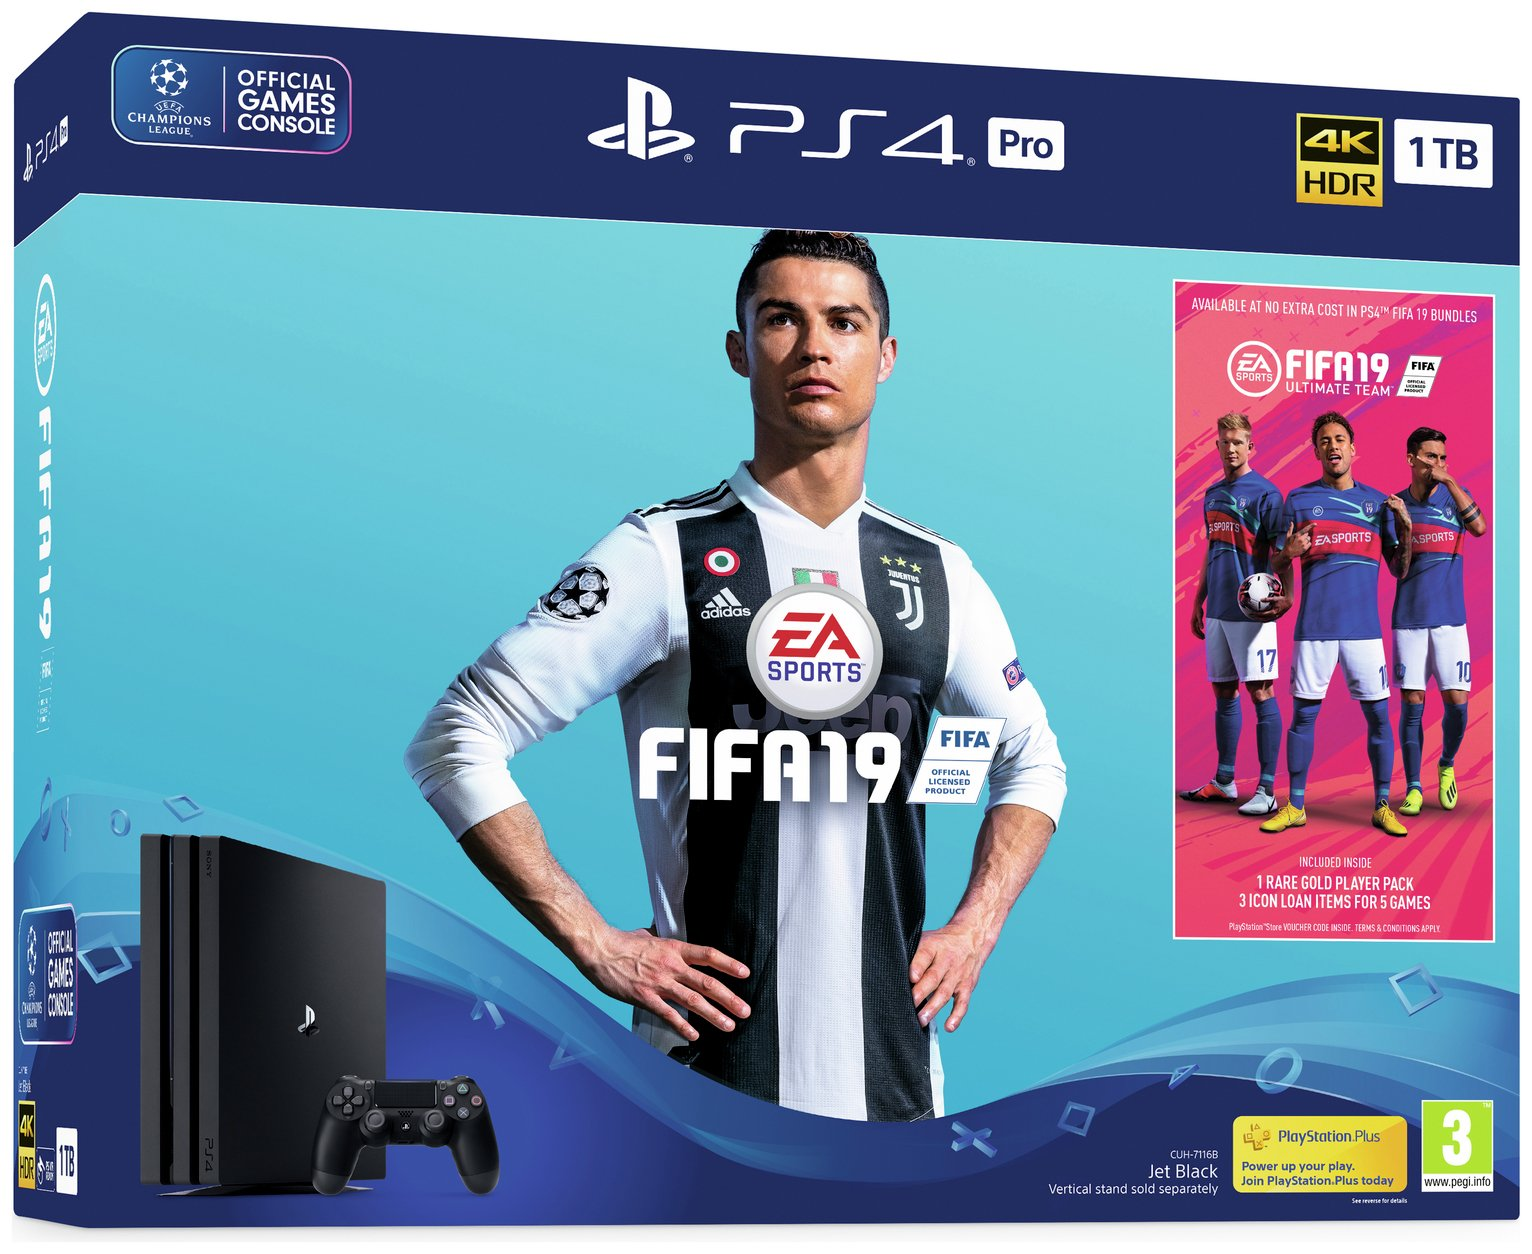 Sony PS4 Pro 1TB Console and FIFA 19 Bundle